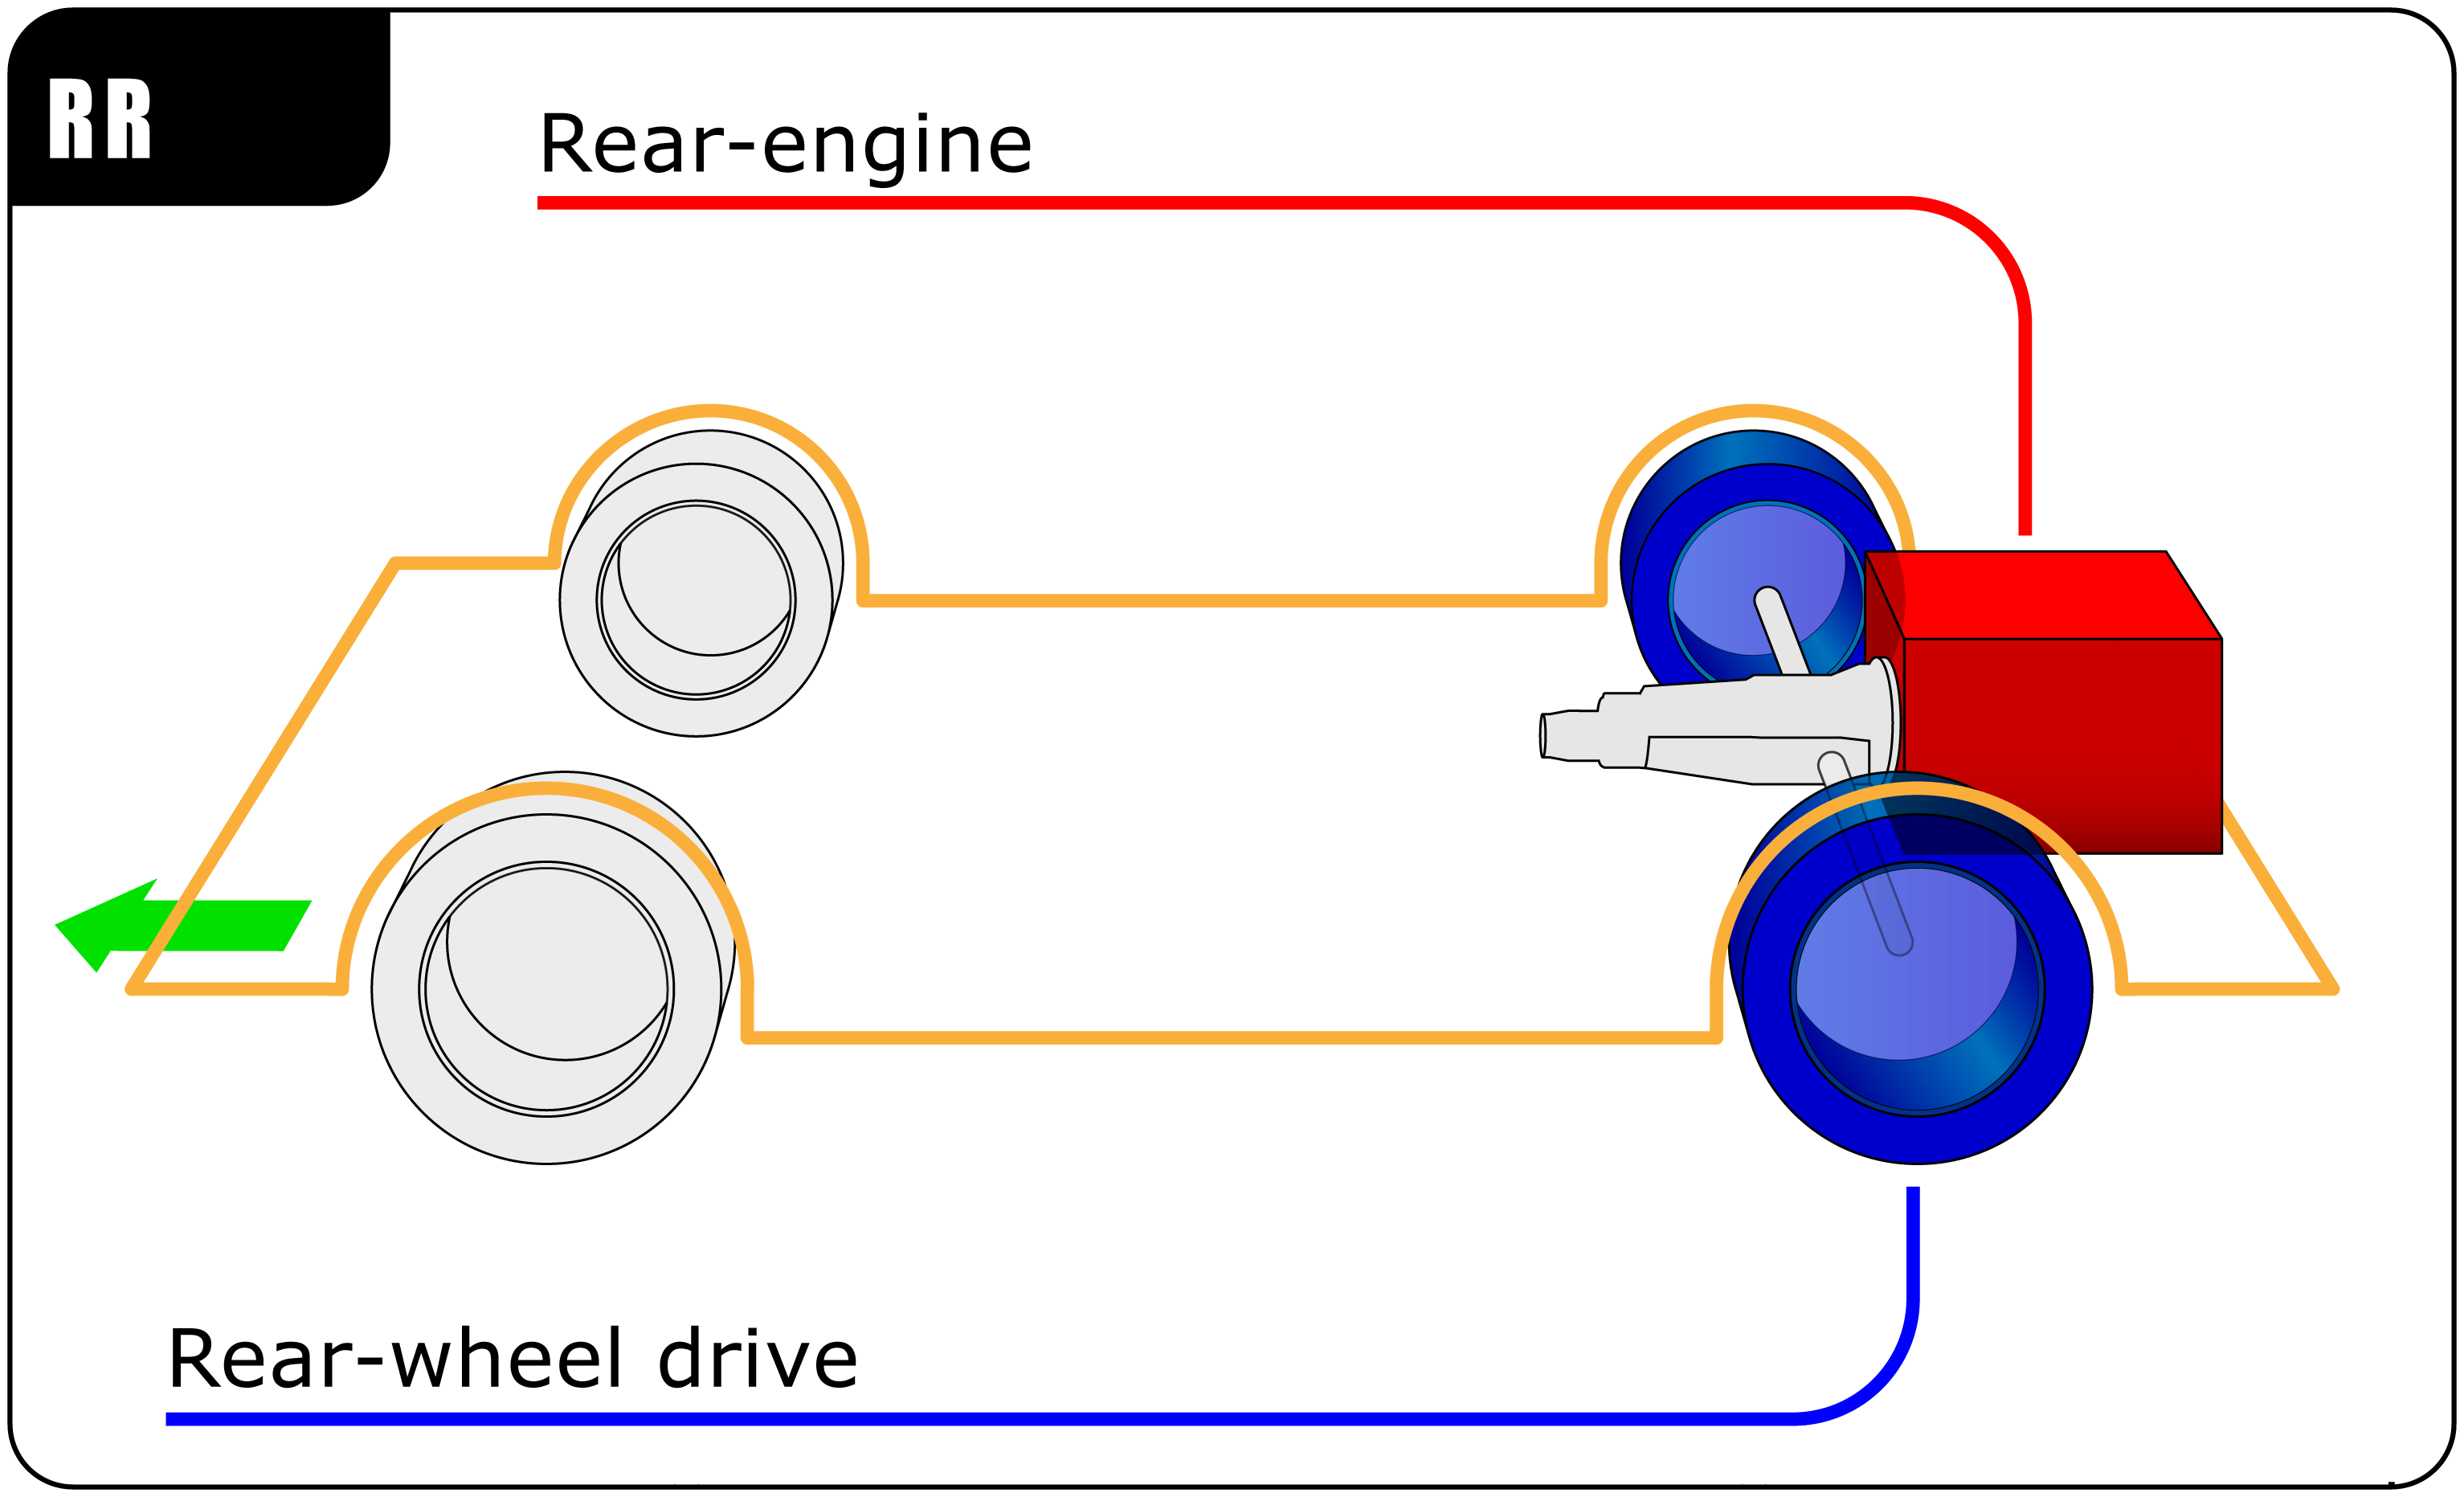 2004 Chevy Classic Engine Diagram Rear Design Wikipedia